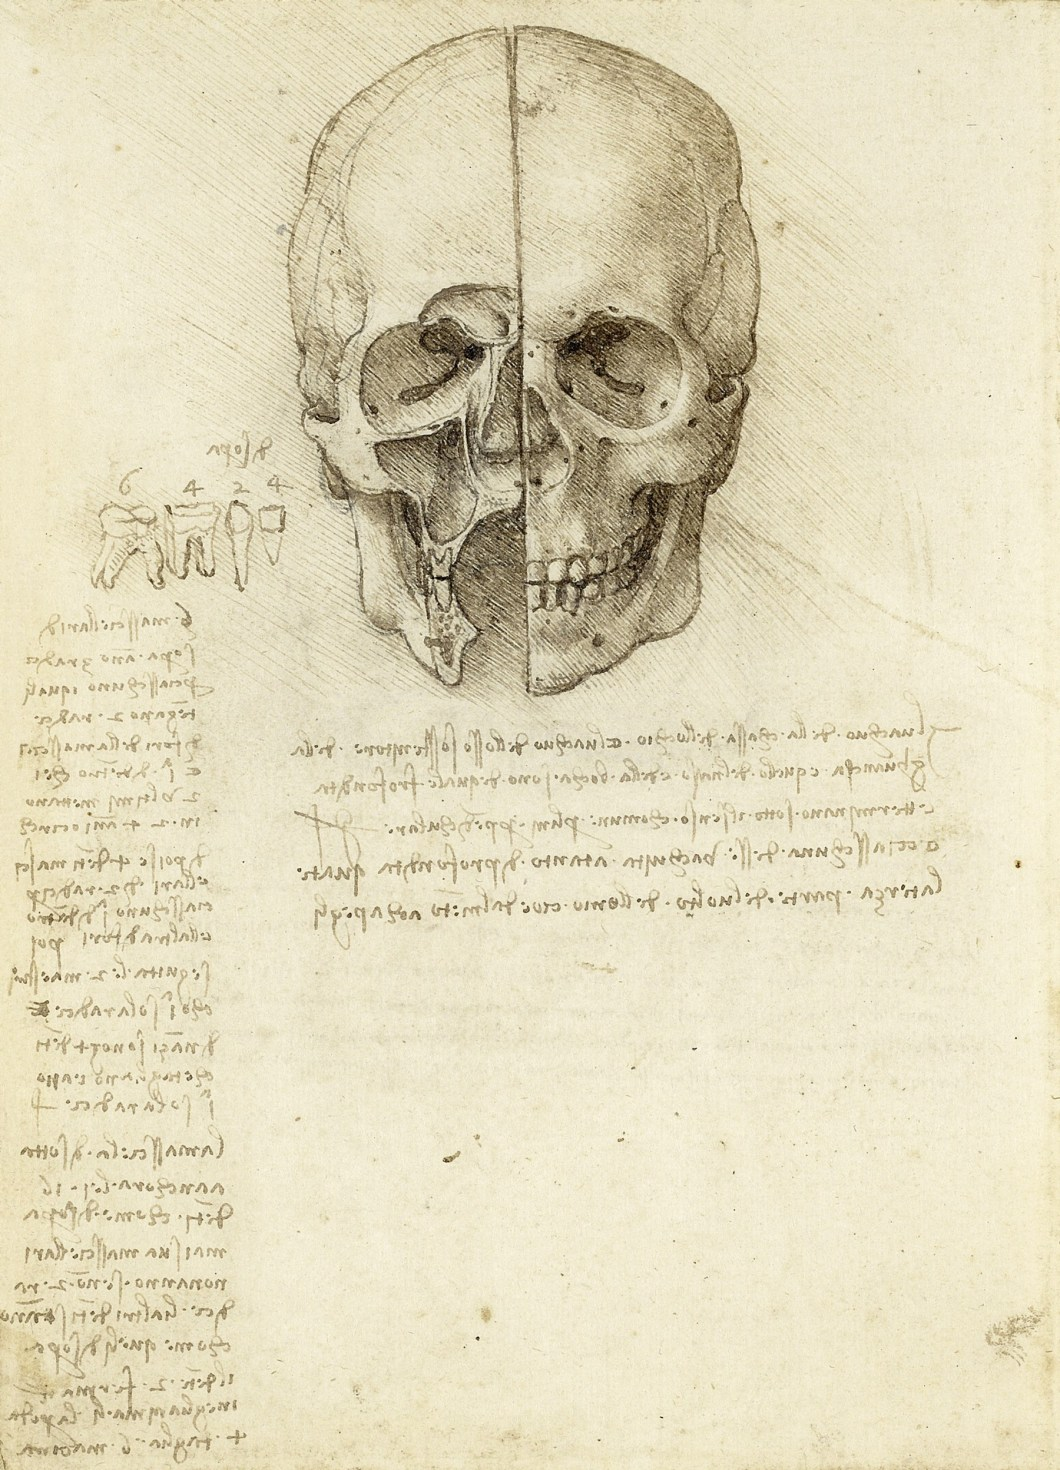 Da Vinci sketch of skull